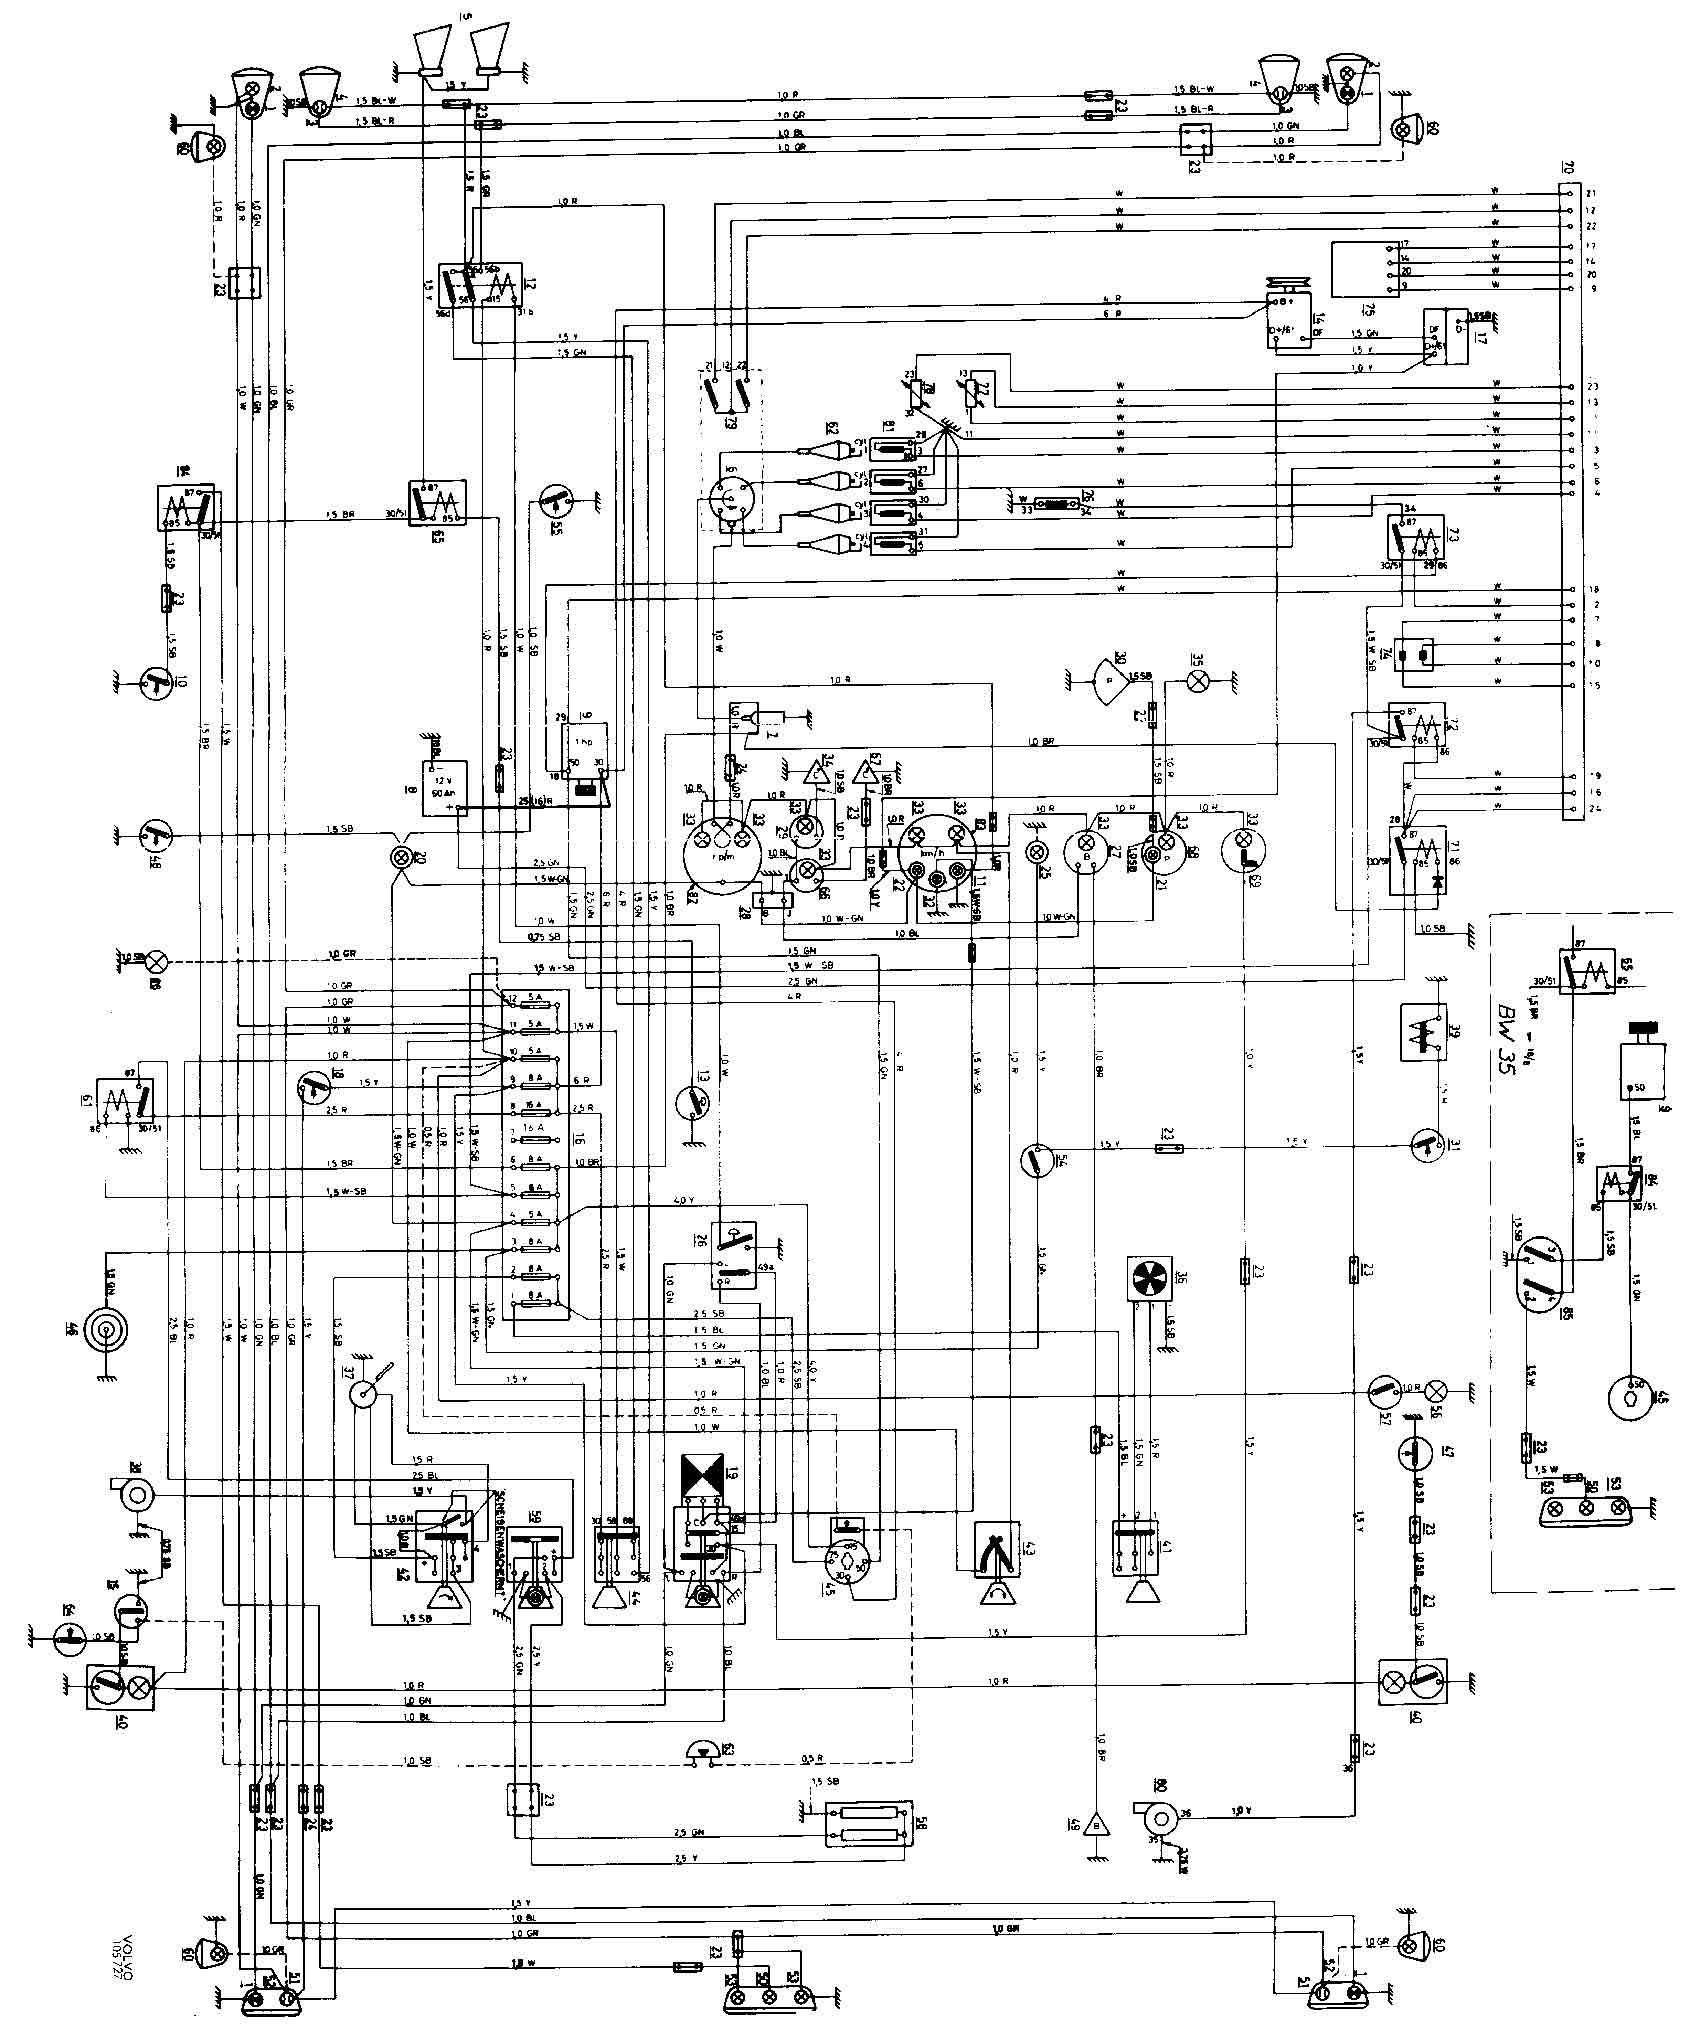 1800E Wiring Diagram micro 850 wiring diagram a b micro 850 \u2022 wiring diagrams j gs850g wiring diagram at webbmarketing.co